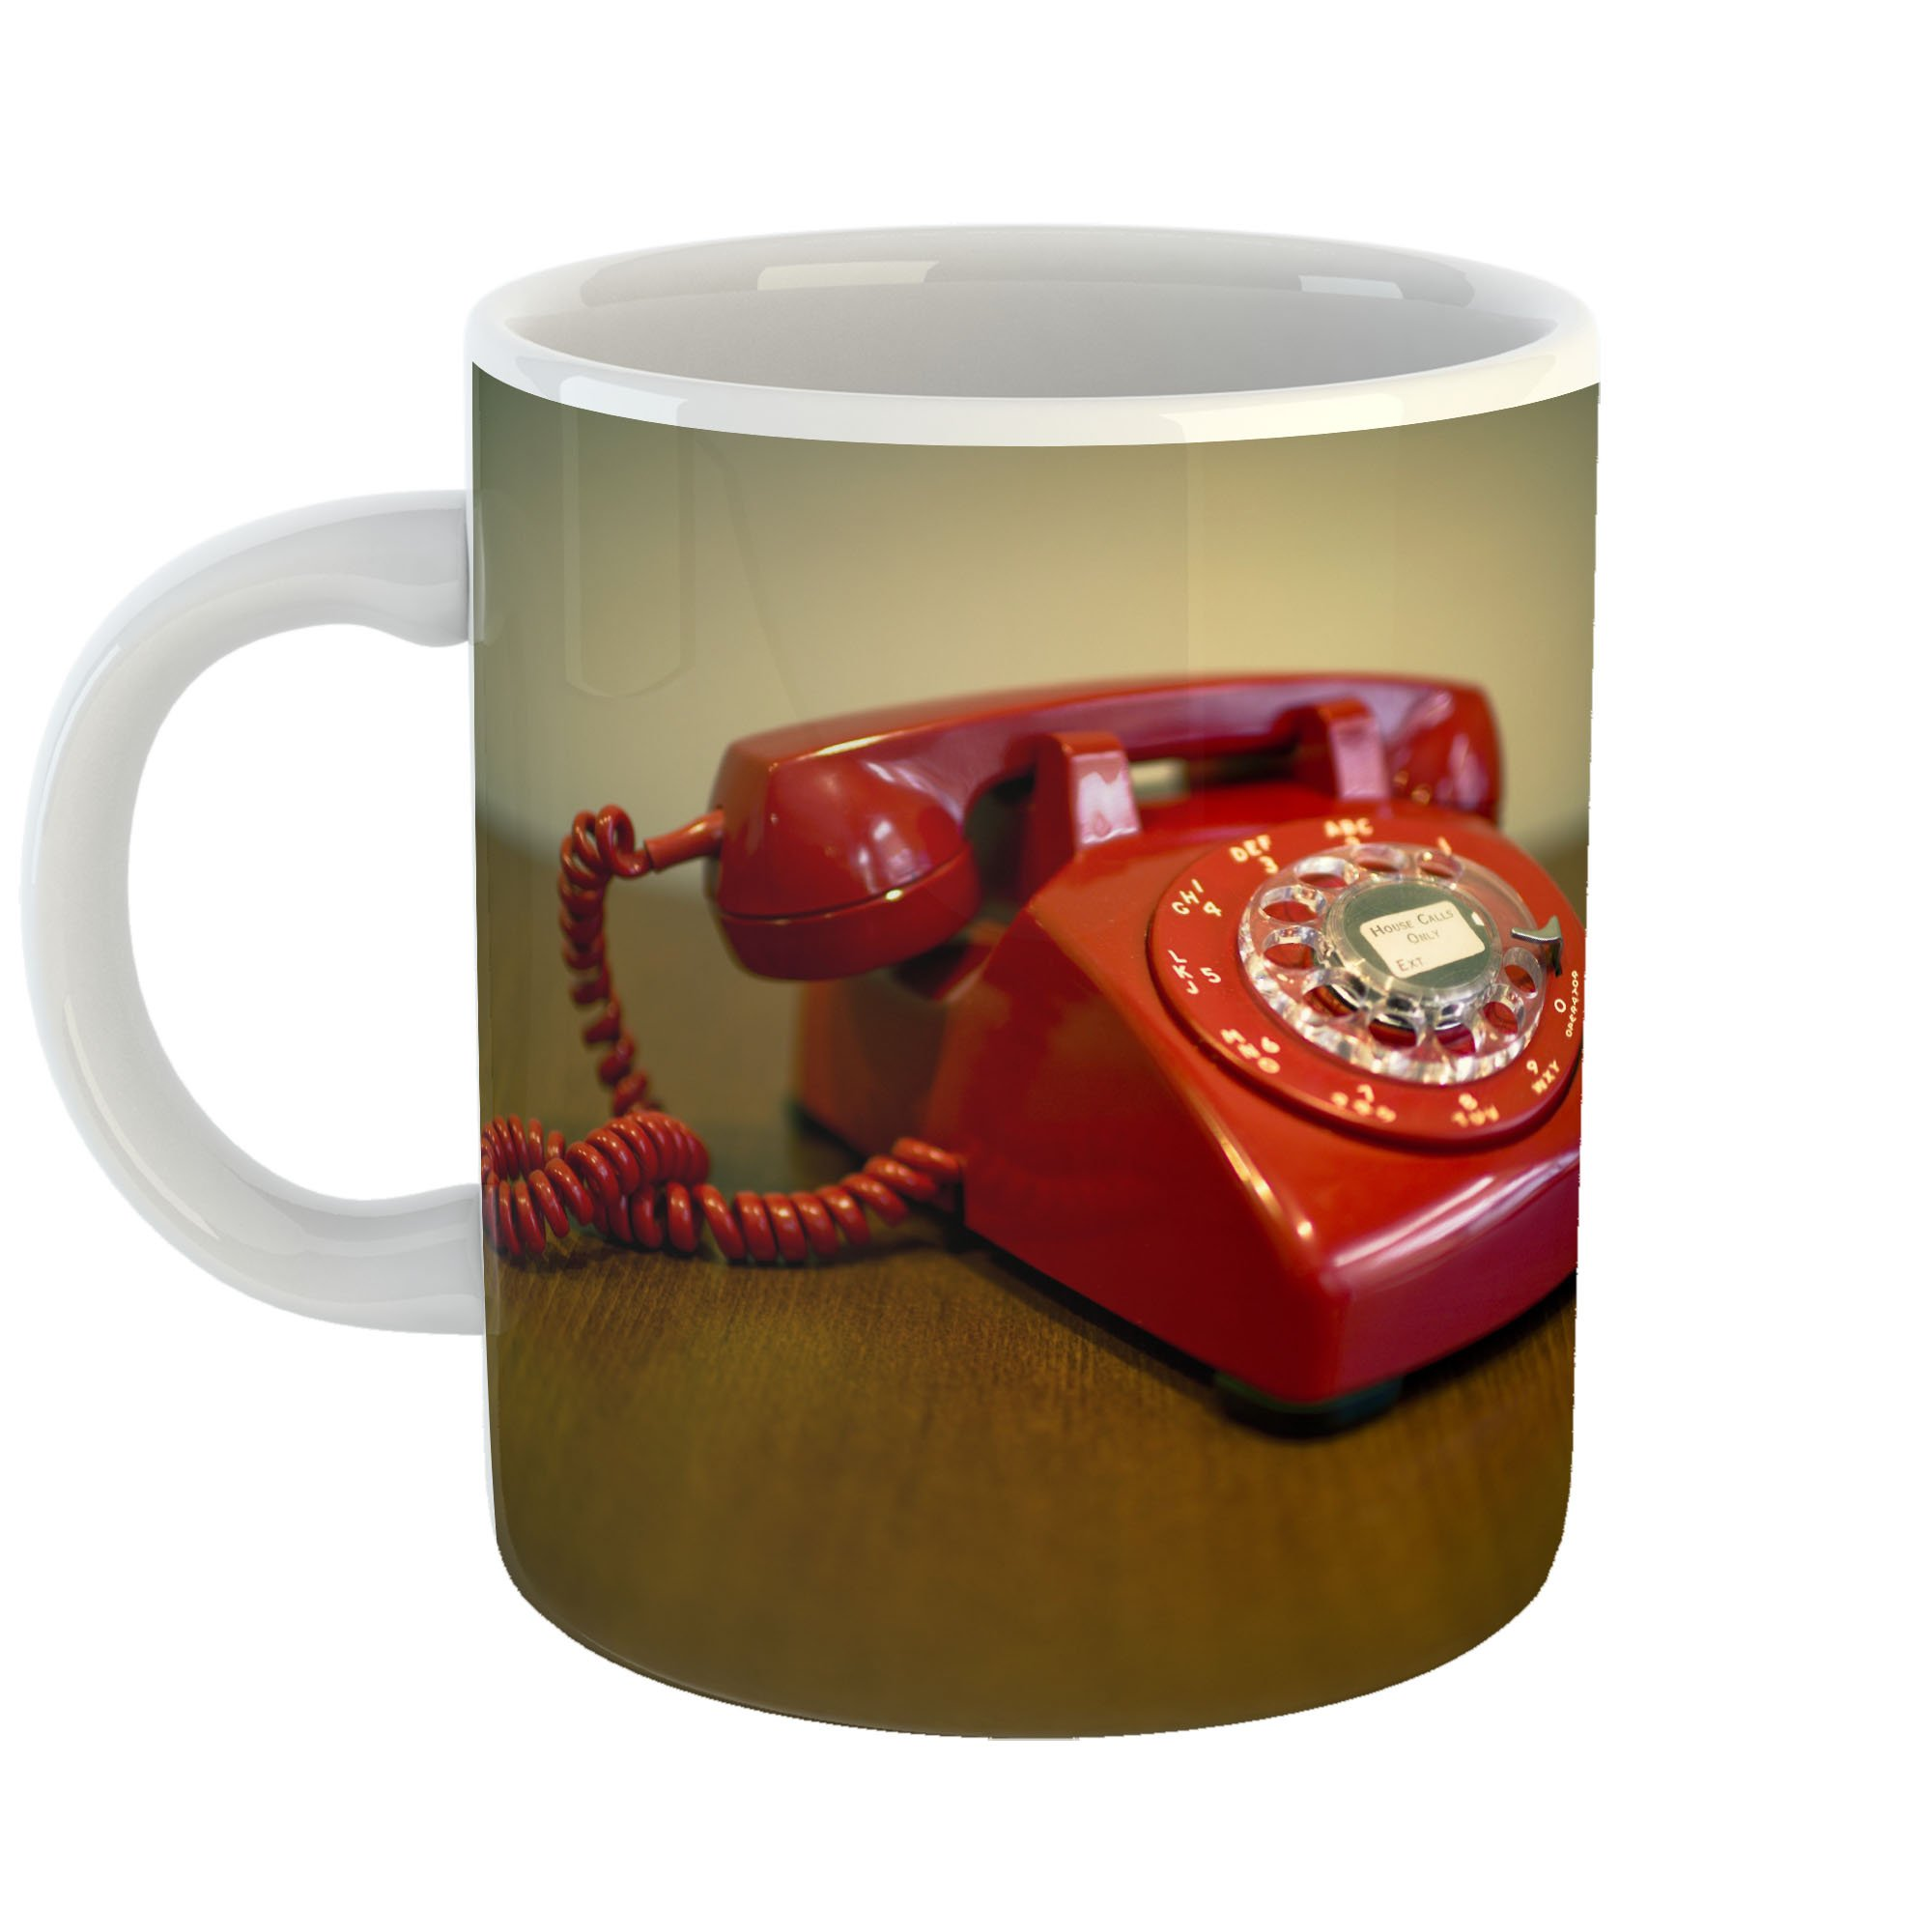 Westlake Art - Hotel Dial - 11oz Coffee Cup Mug - Modern Picture Photography Artwork Home Office Birthday Gift - 11 Ounce (152D-79243)